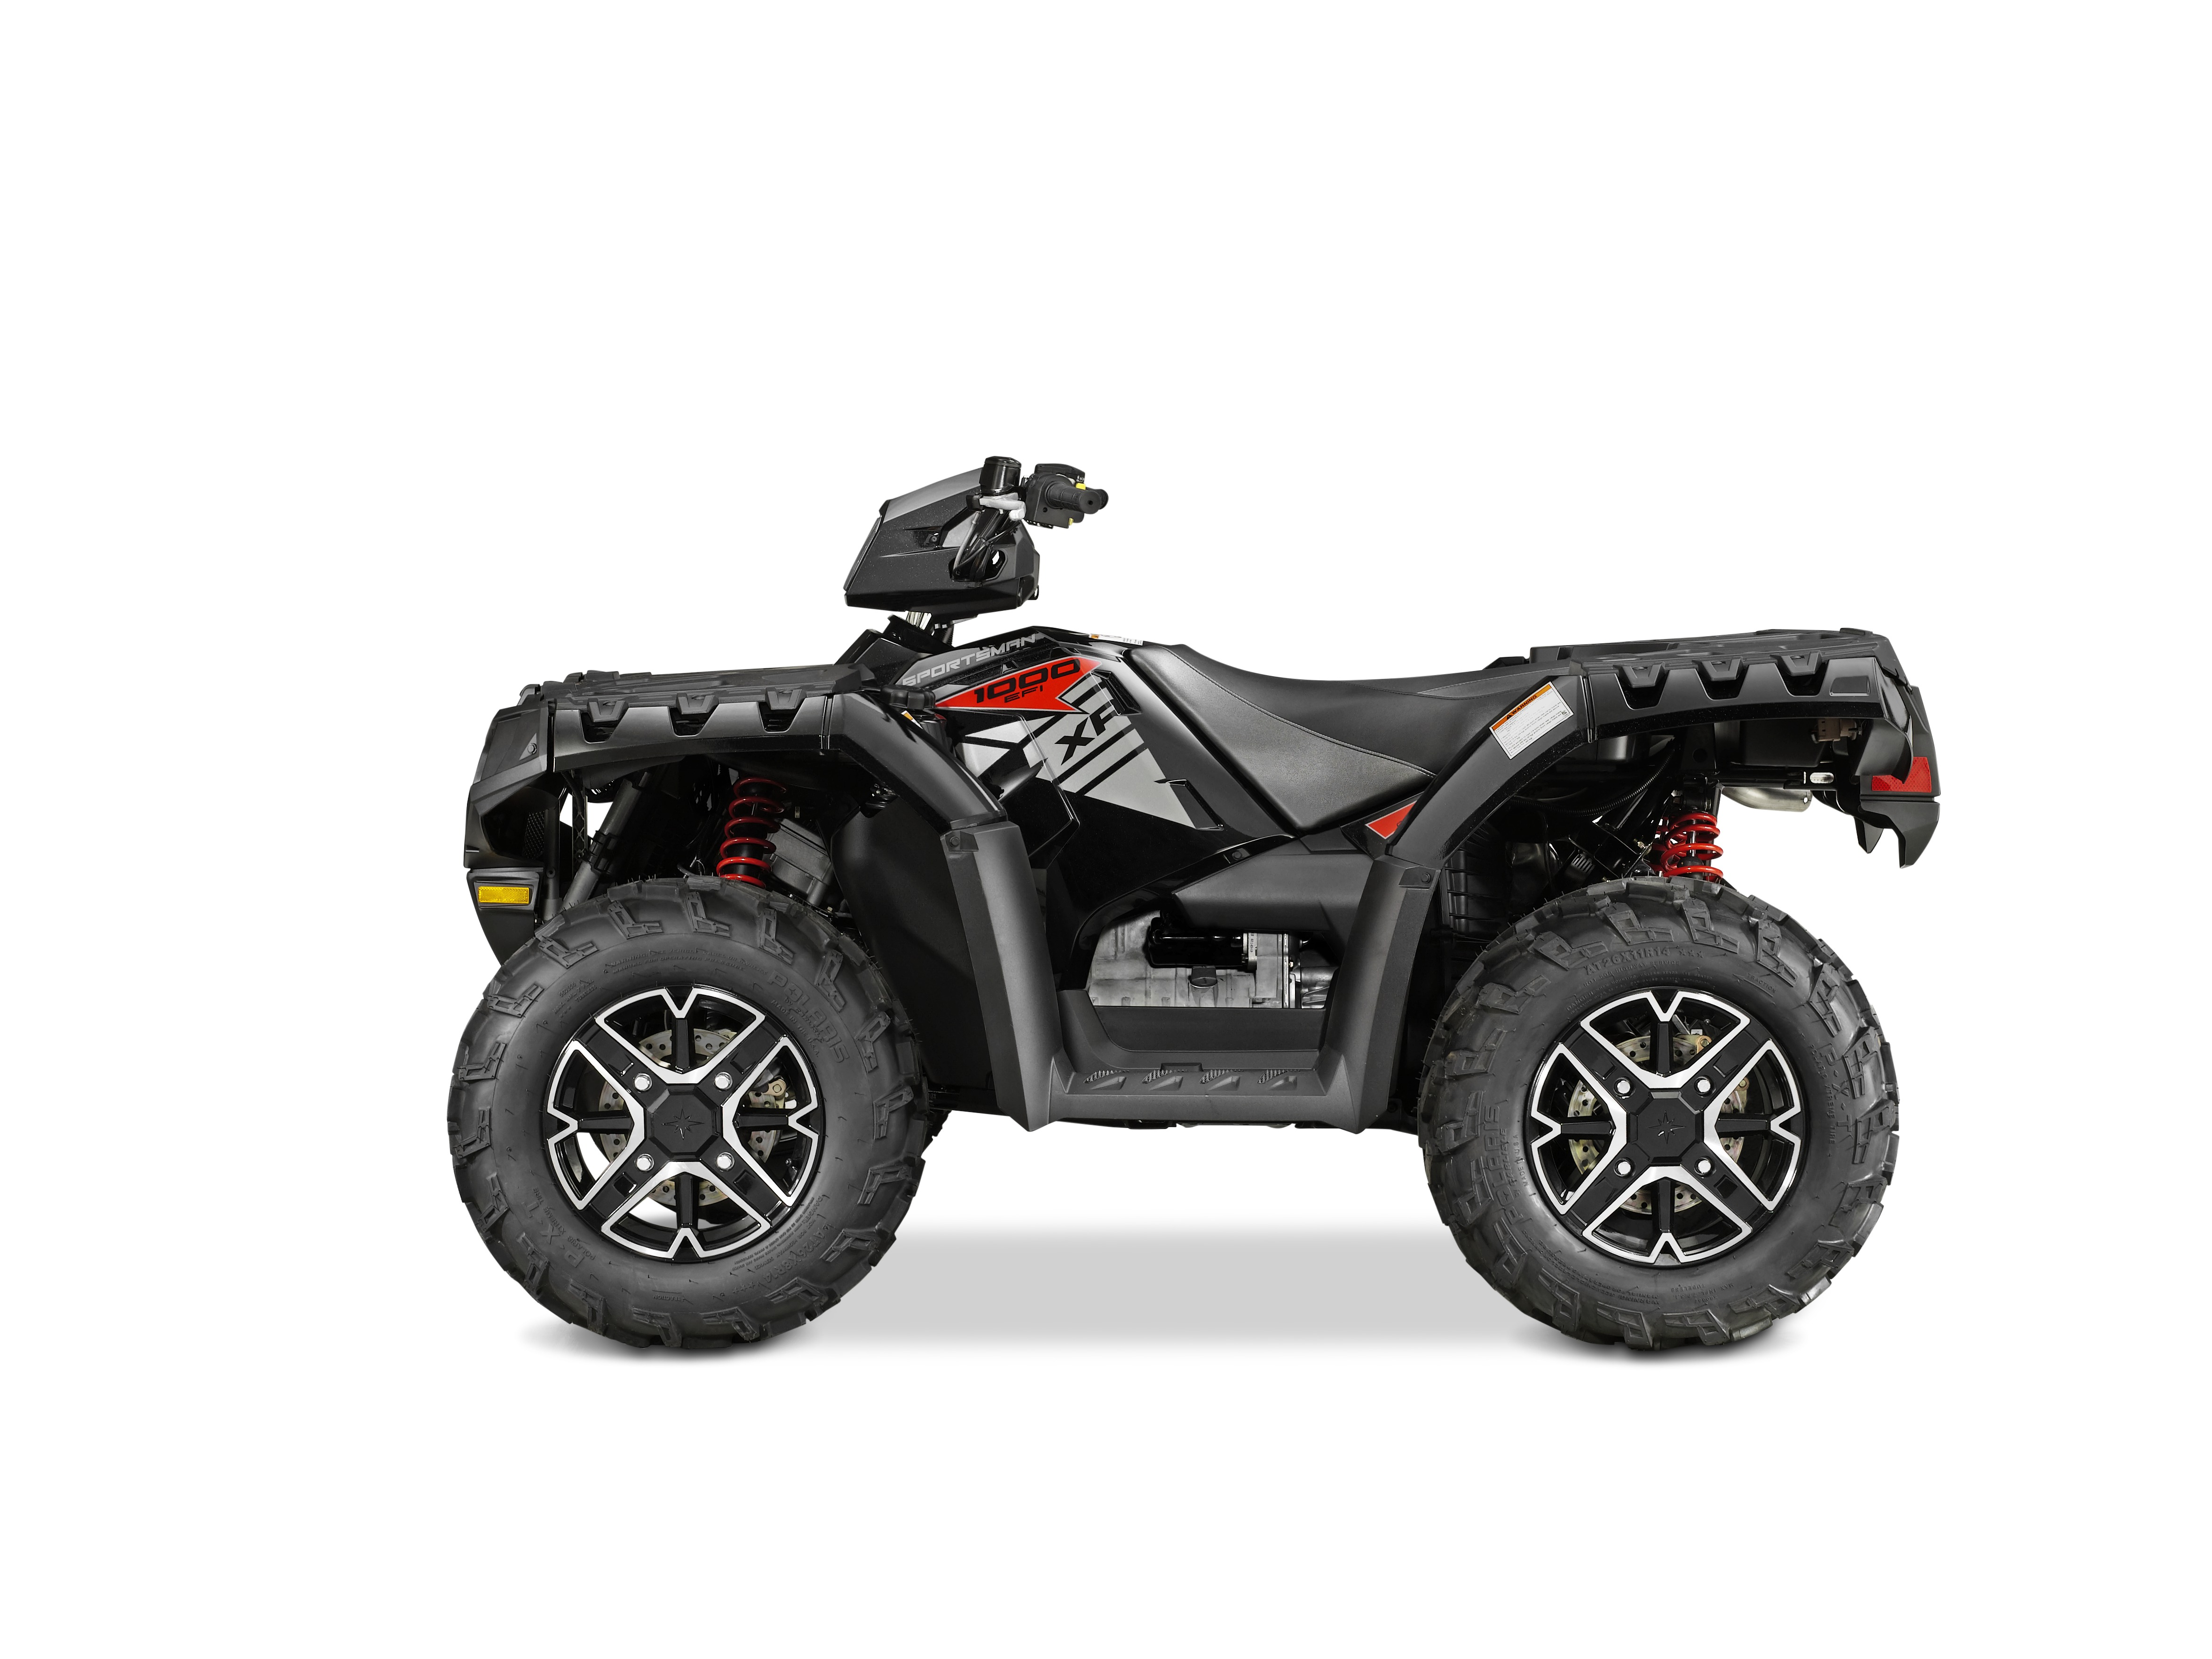 Polaris 2015 Sportsman XP 1000 Black Pearl Metallic